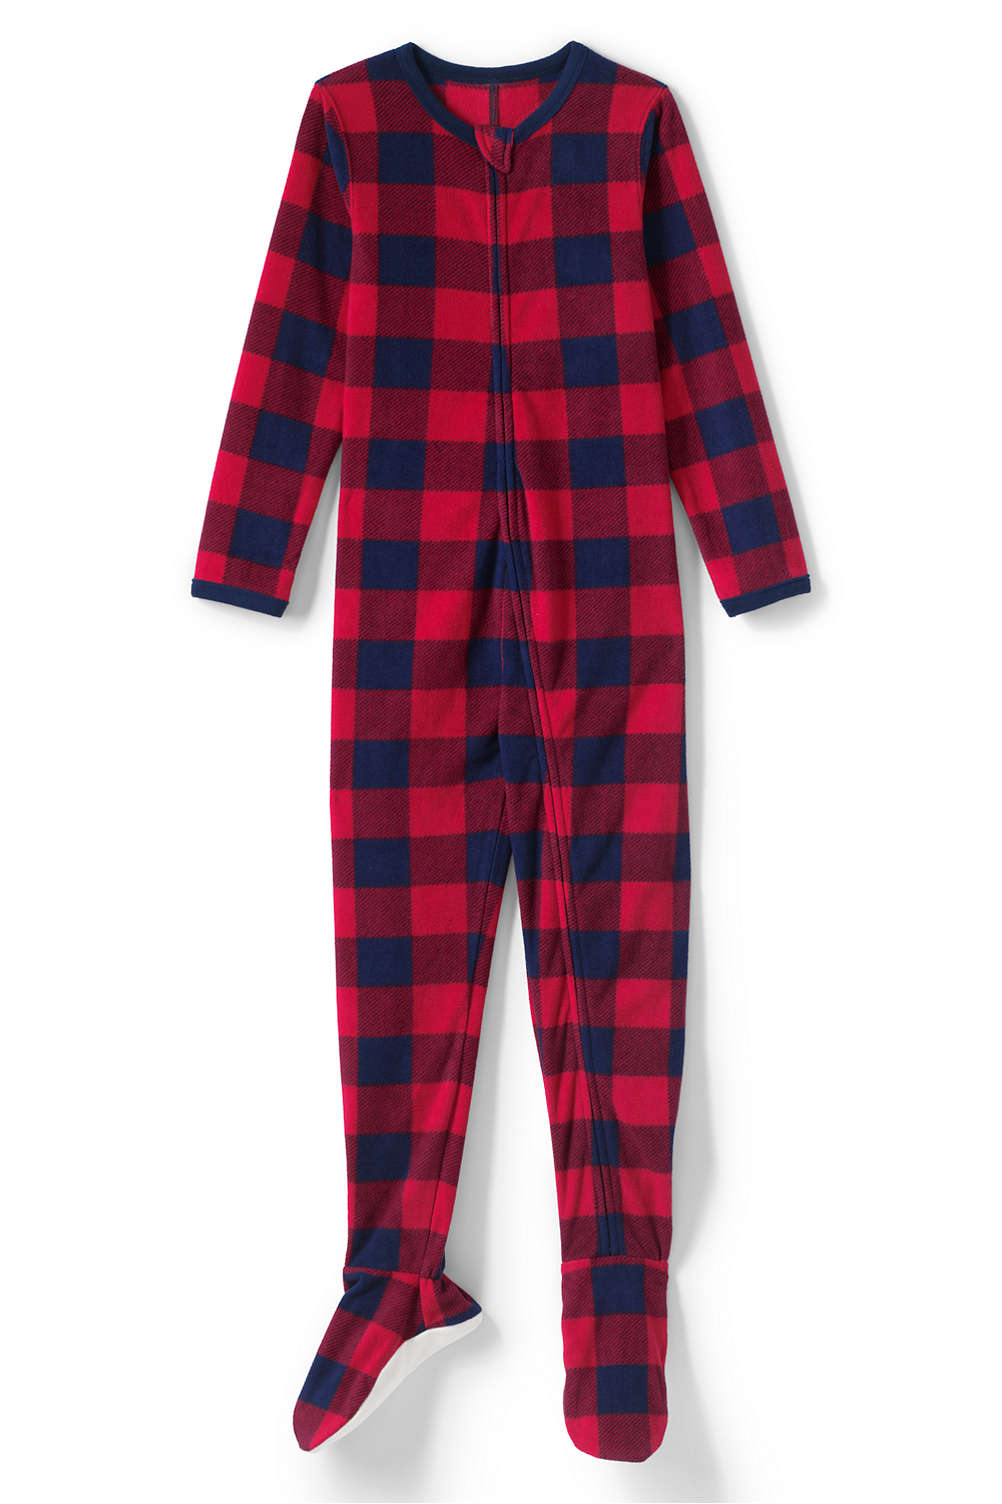 ... 7b008 b56d5 Boys Full Zip Fleece Footed Sleeper from Lands End  super  popular af0f3 d8566 Vaenait Baby 1-7Y Cozy Warm Fleece Kids Boys Wearable  Blanket ... 1c4546dec